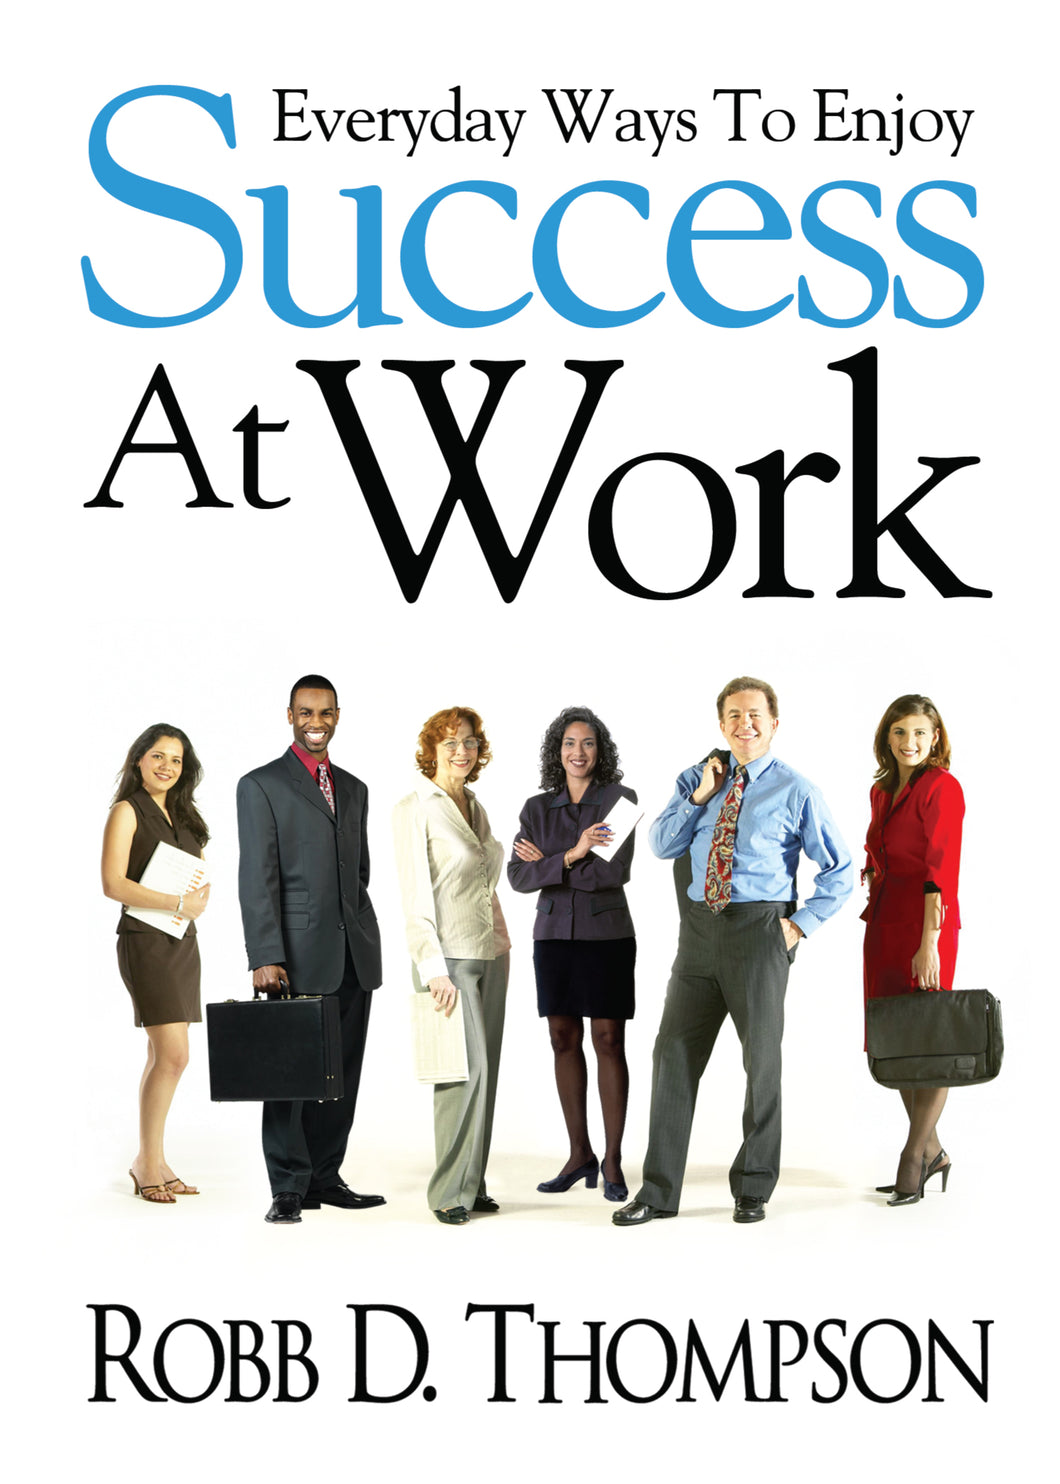 Everyday Ways to Enjoy to Success at Work